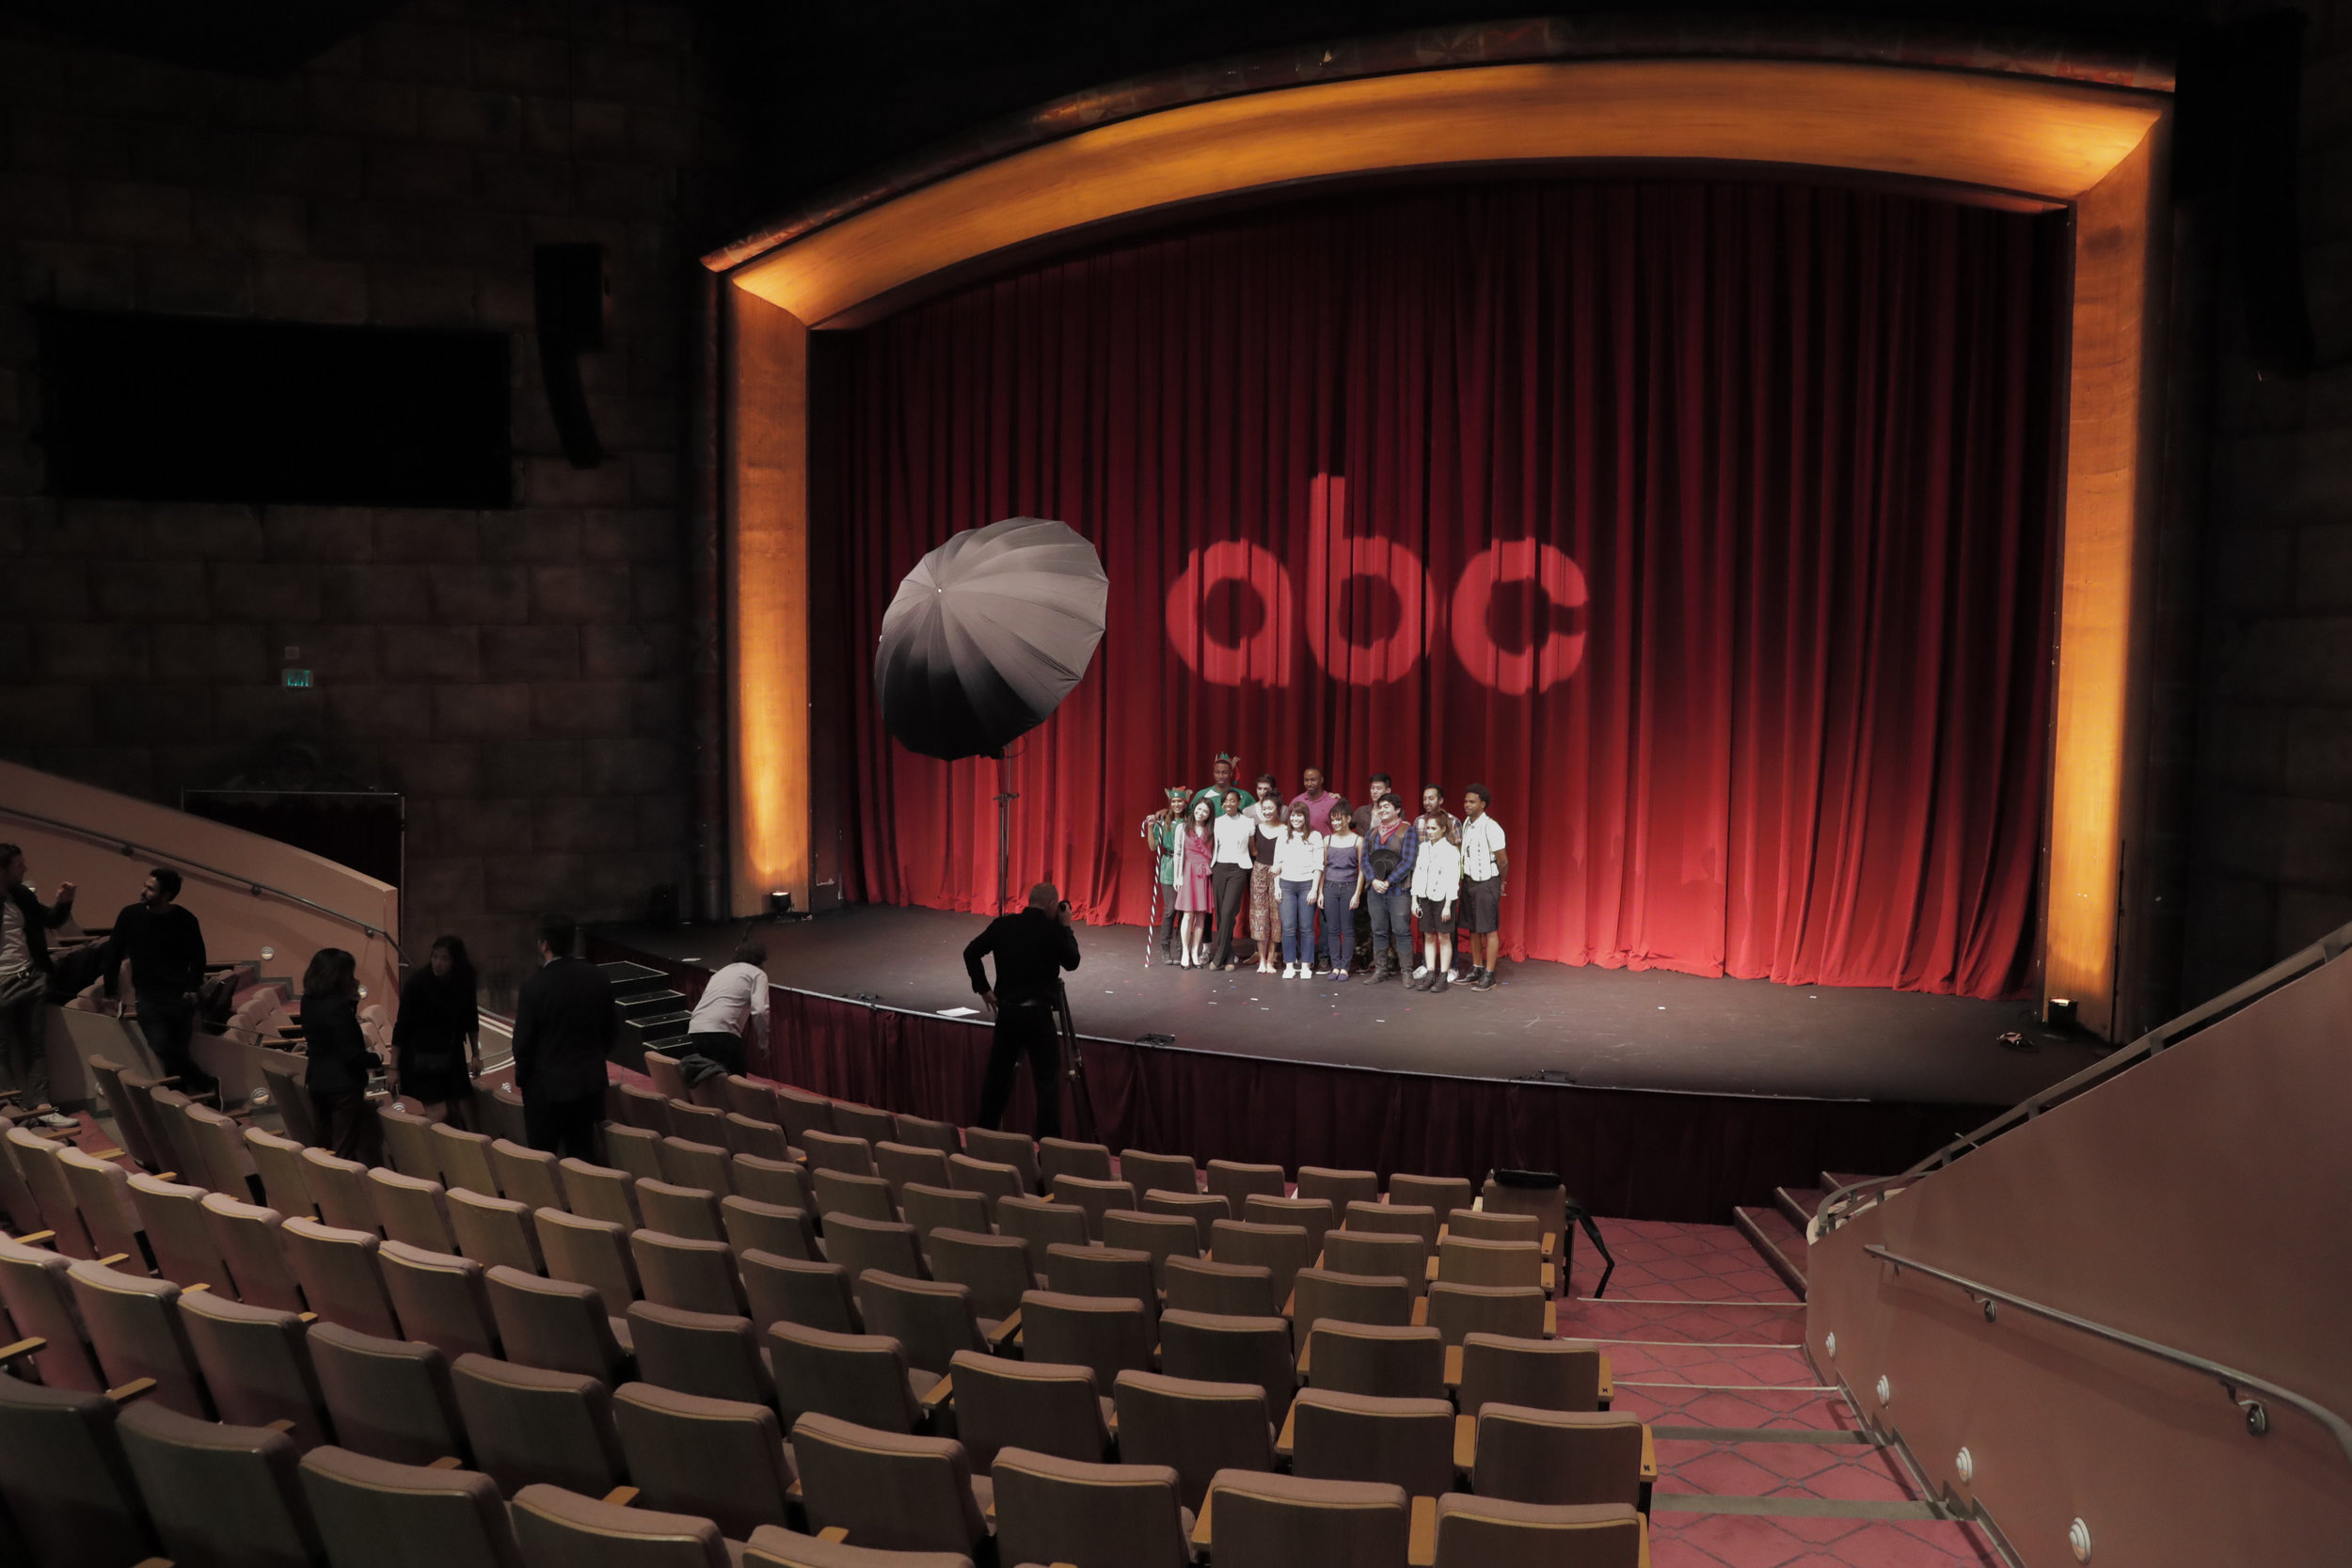 Director for the ABC Talent and Casting Showcase held at the El Portal Theatre in North Hollywood.